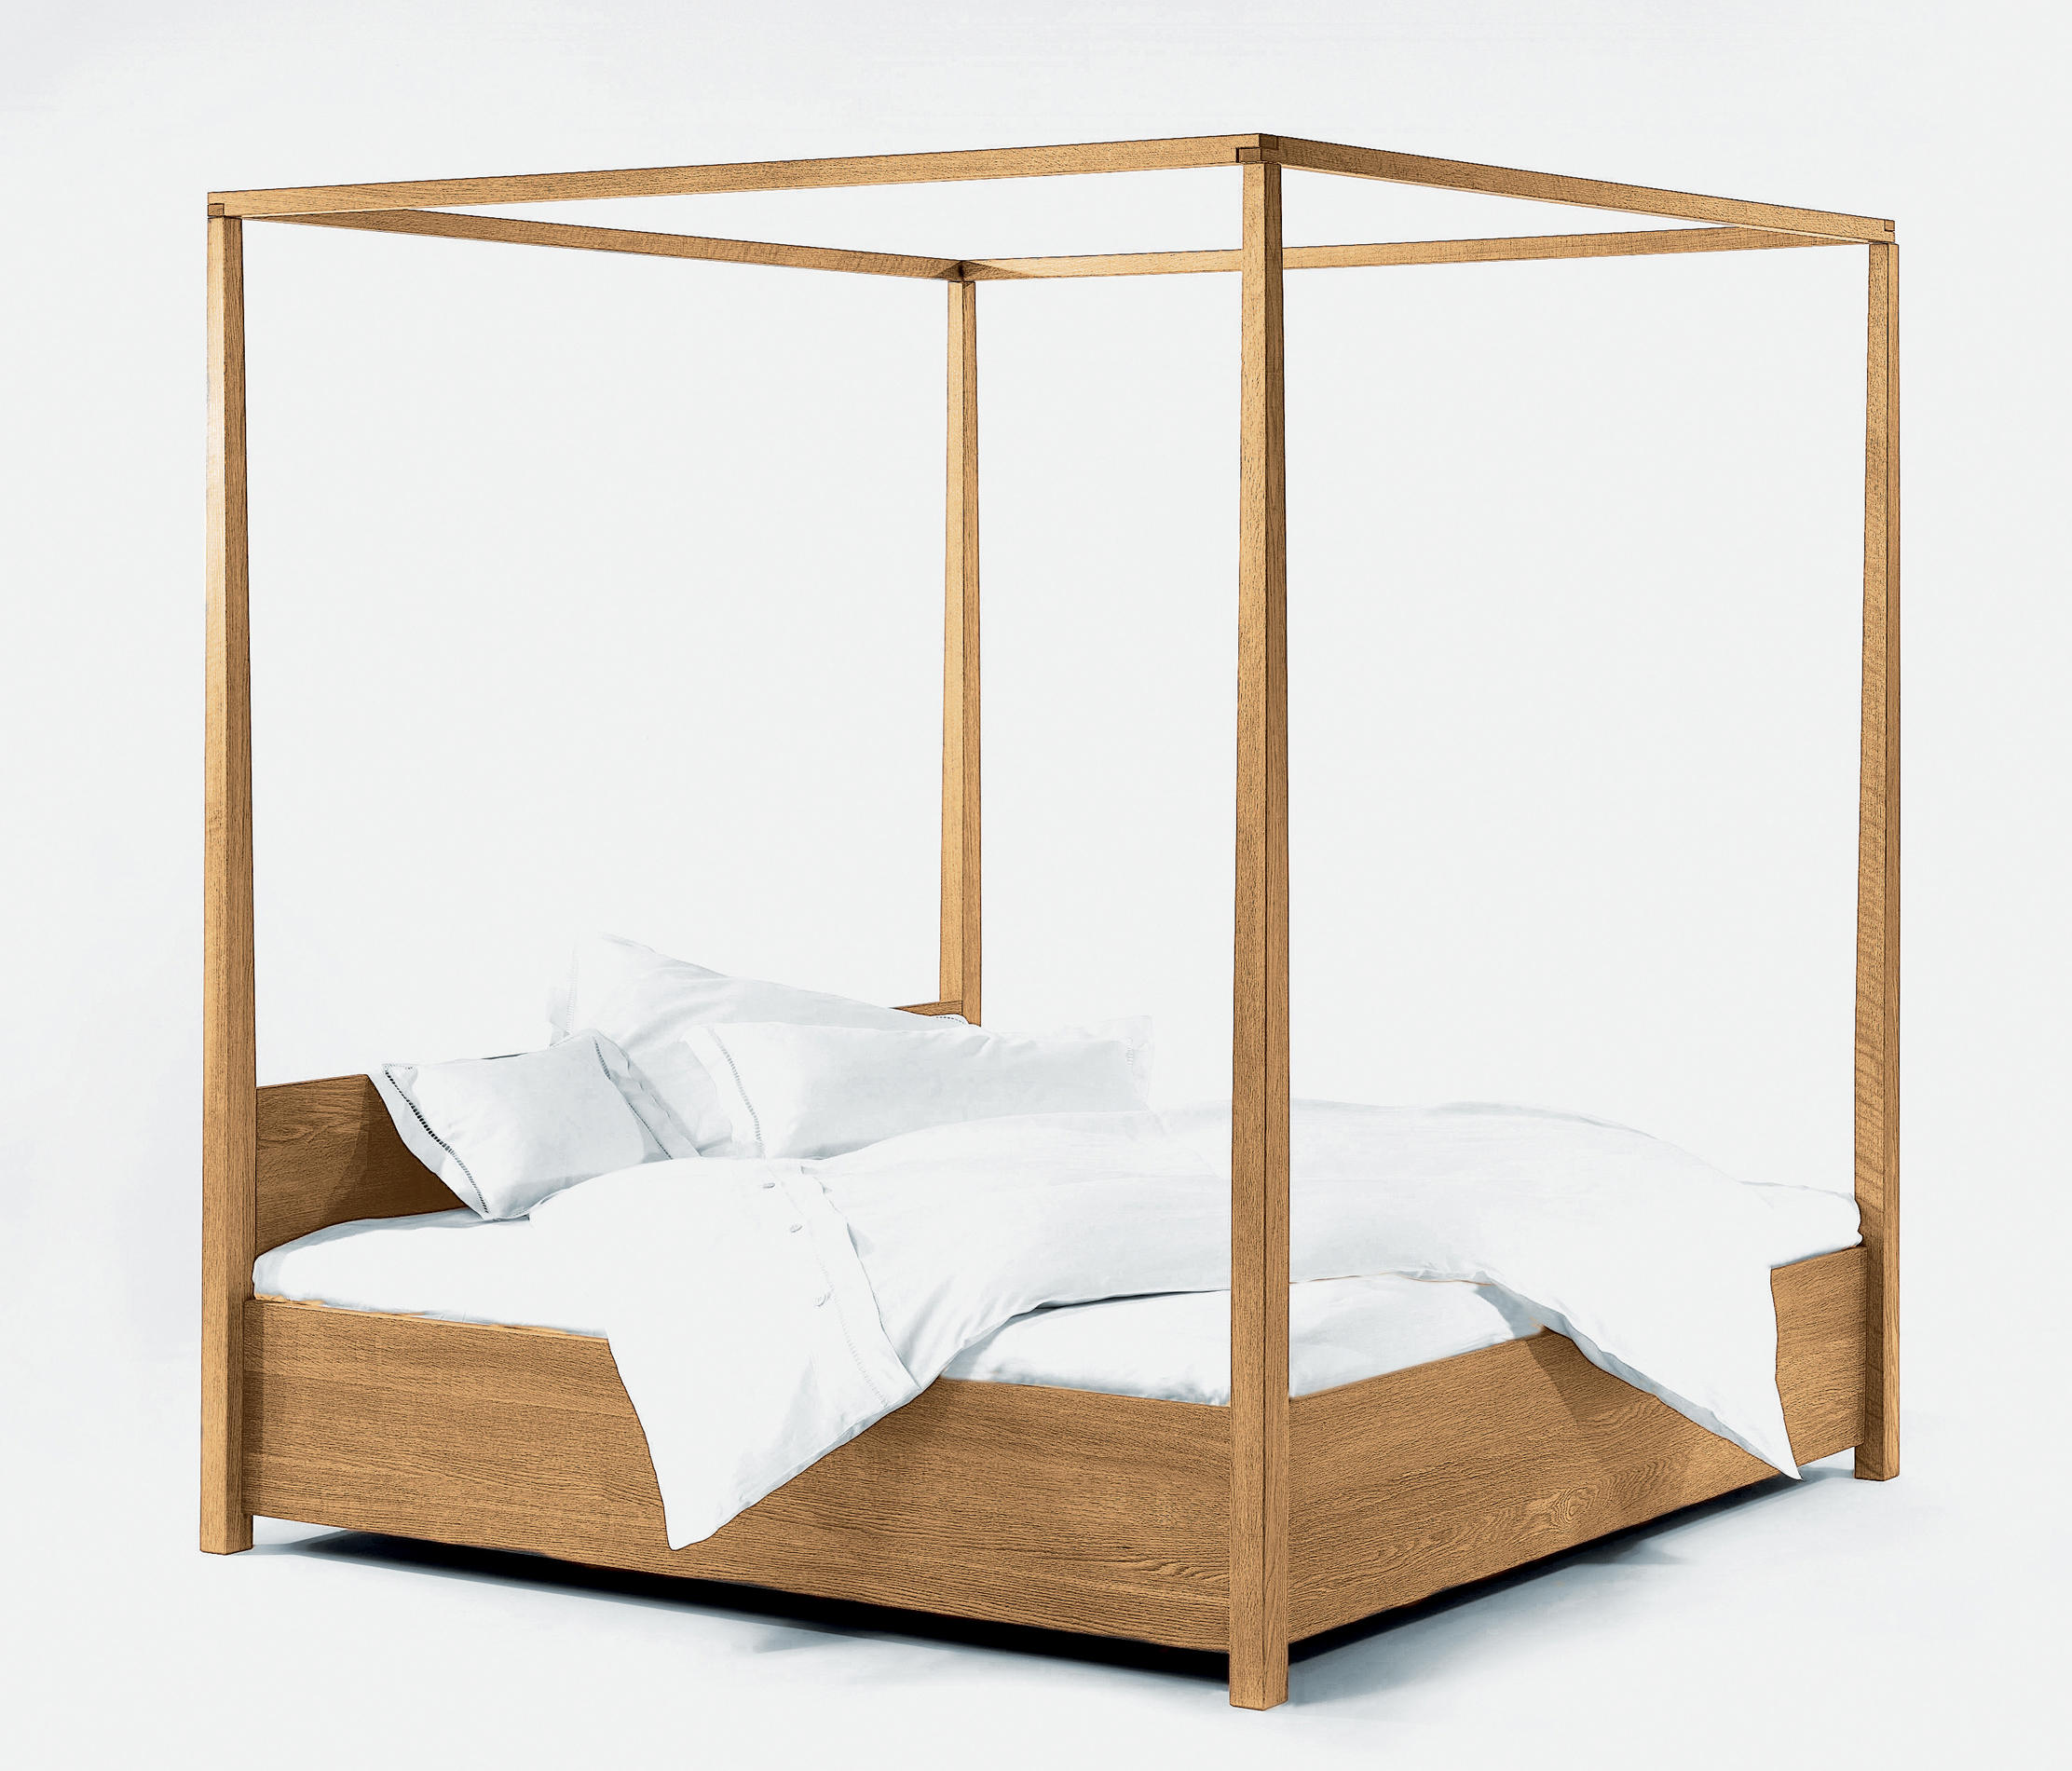 arkadia himmelbett 180 four poster beds from lambert architonic. Black Bedroom Furniture Sets. Home Design Ideas